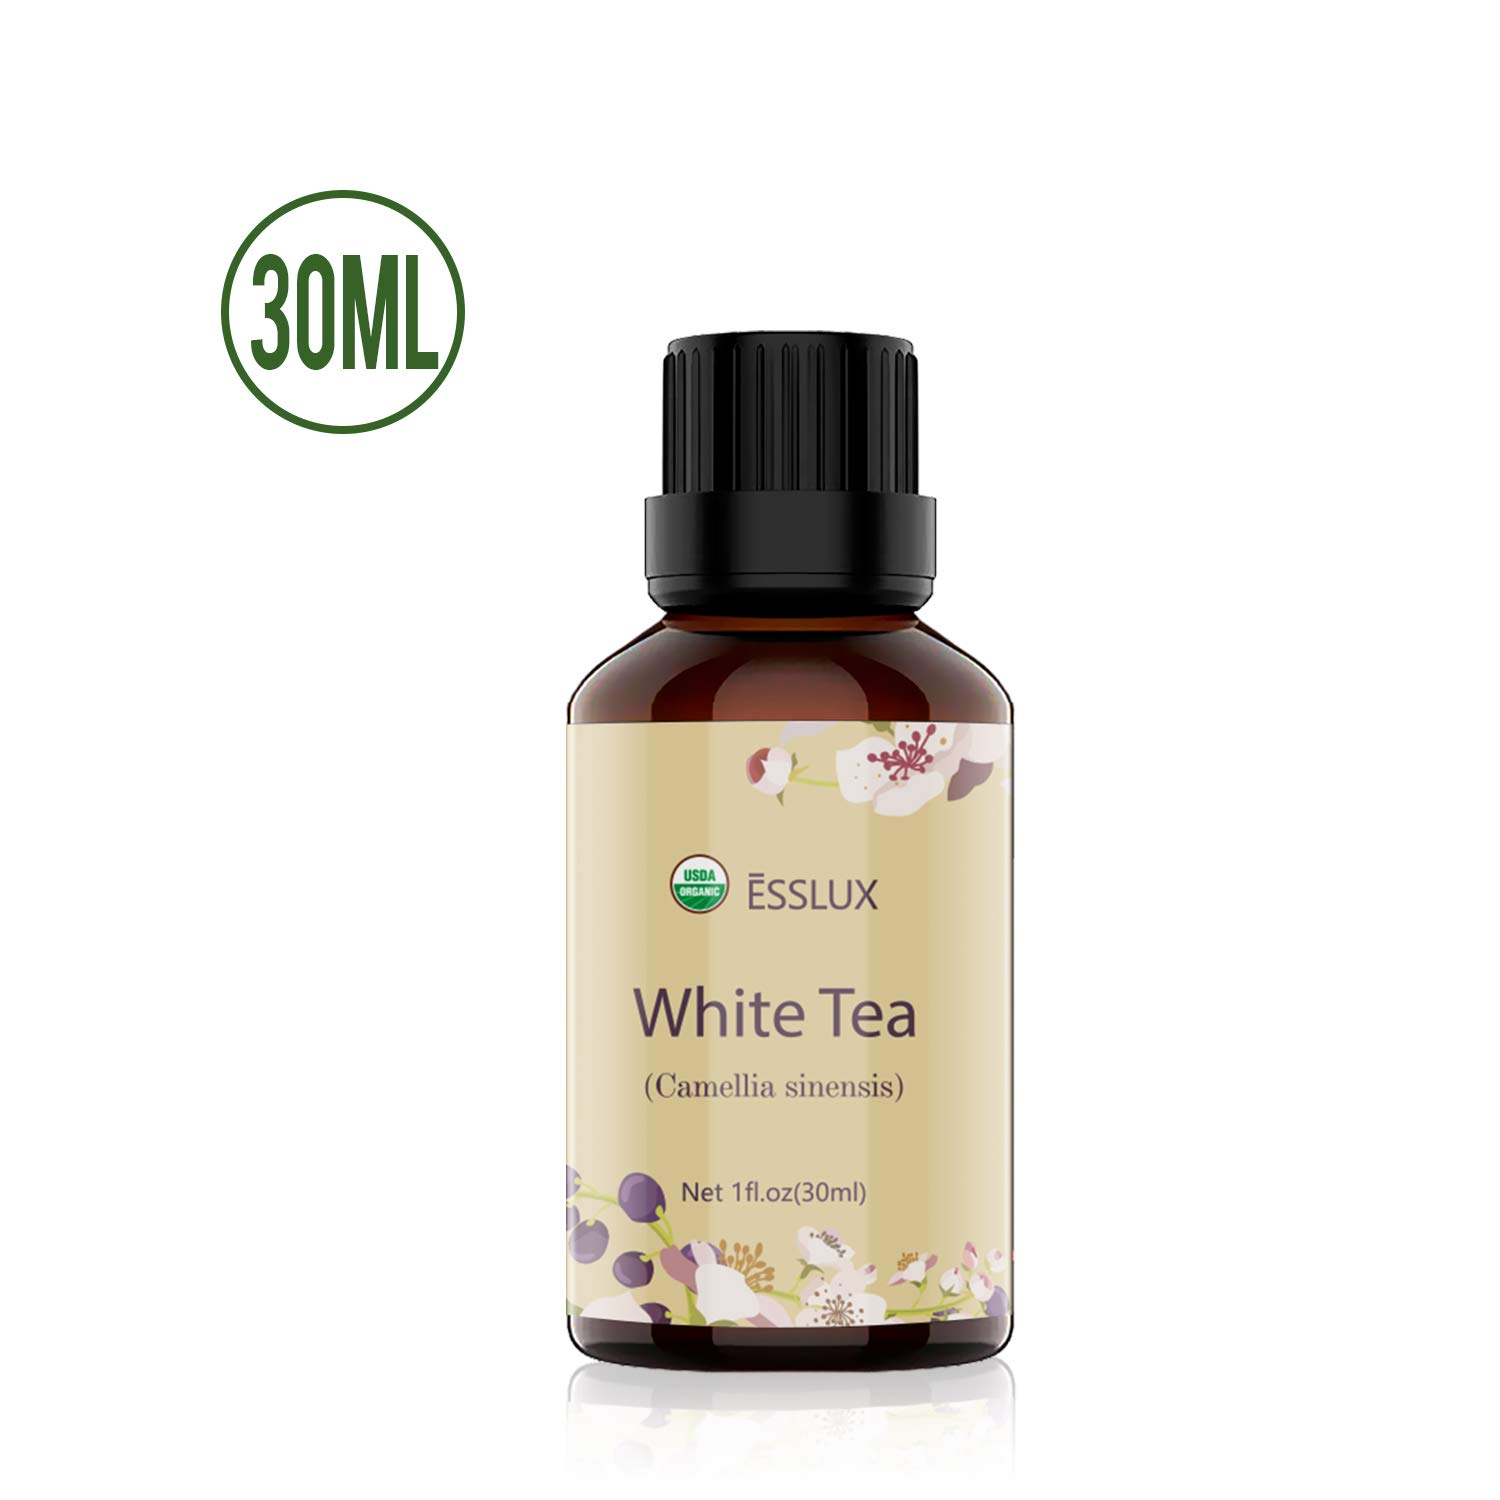 White Tea Essential Oil, ESSLUX Natural Primium Grade Scented Oil for Diffuser, Aromatherapy, 30ml